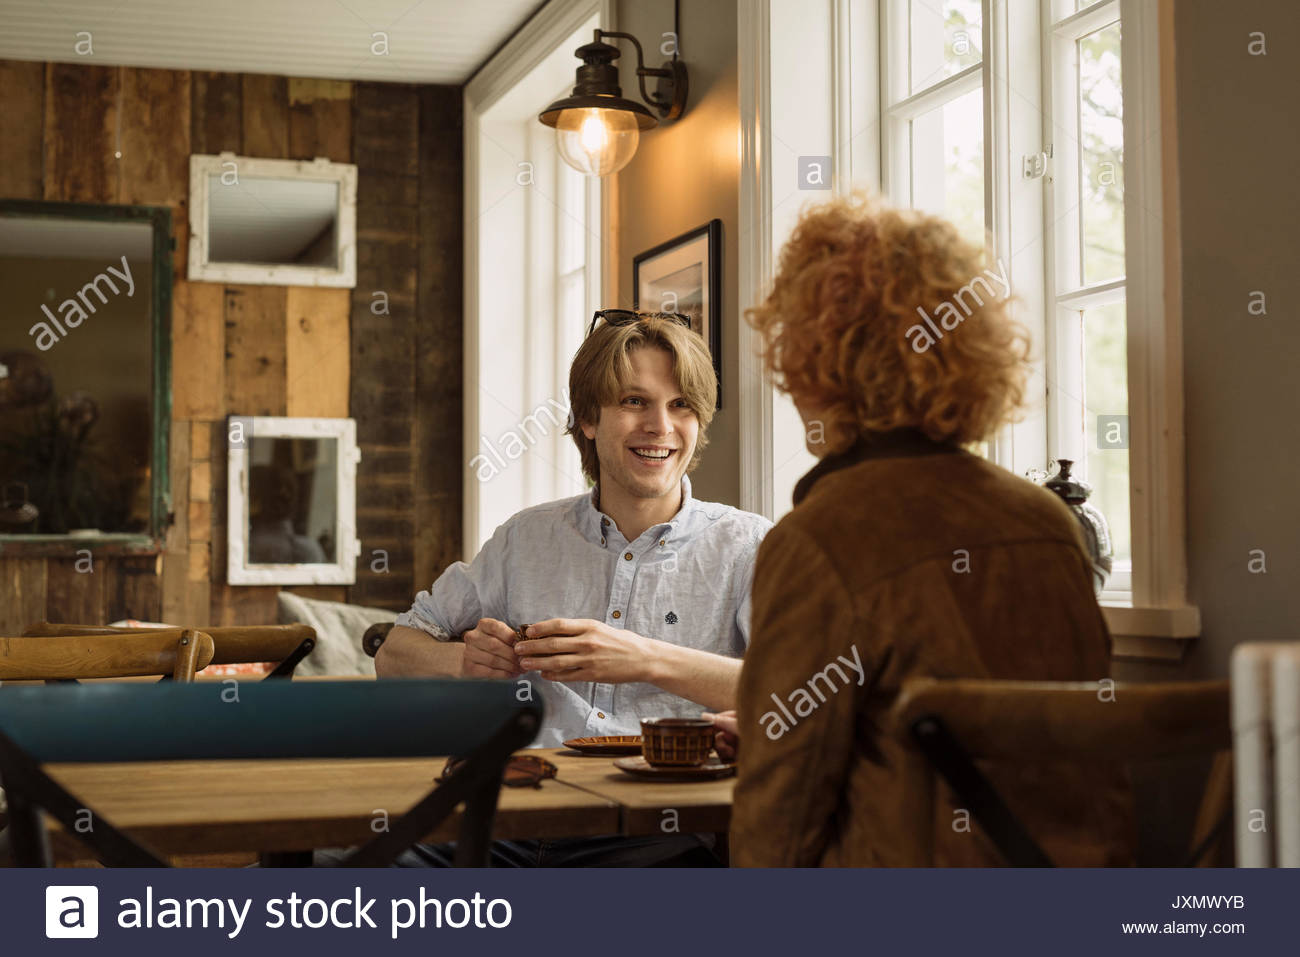 Couple on date in cafe smiling - Stock Image